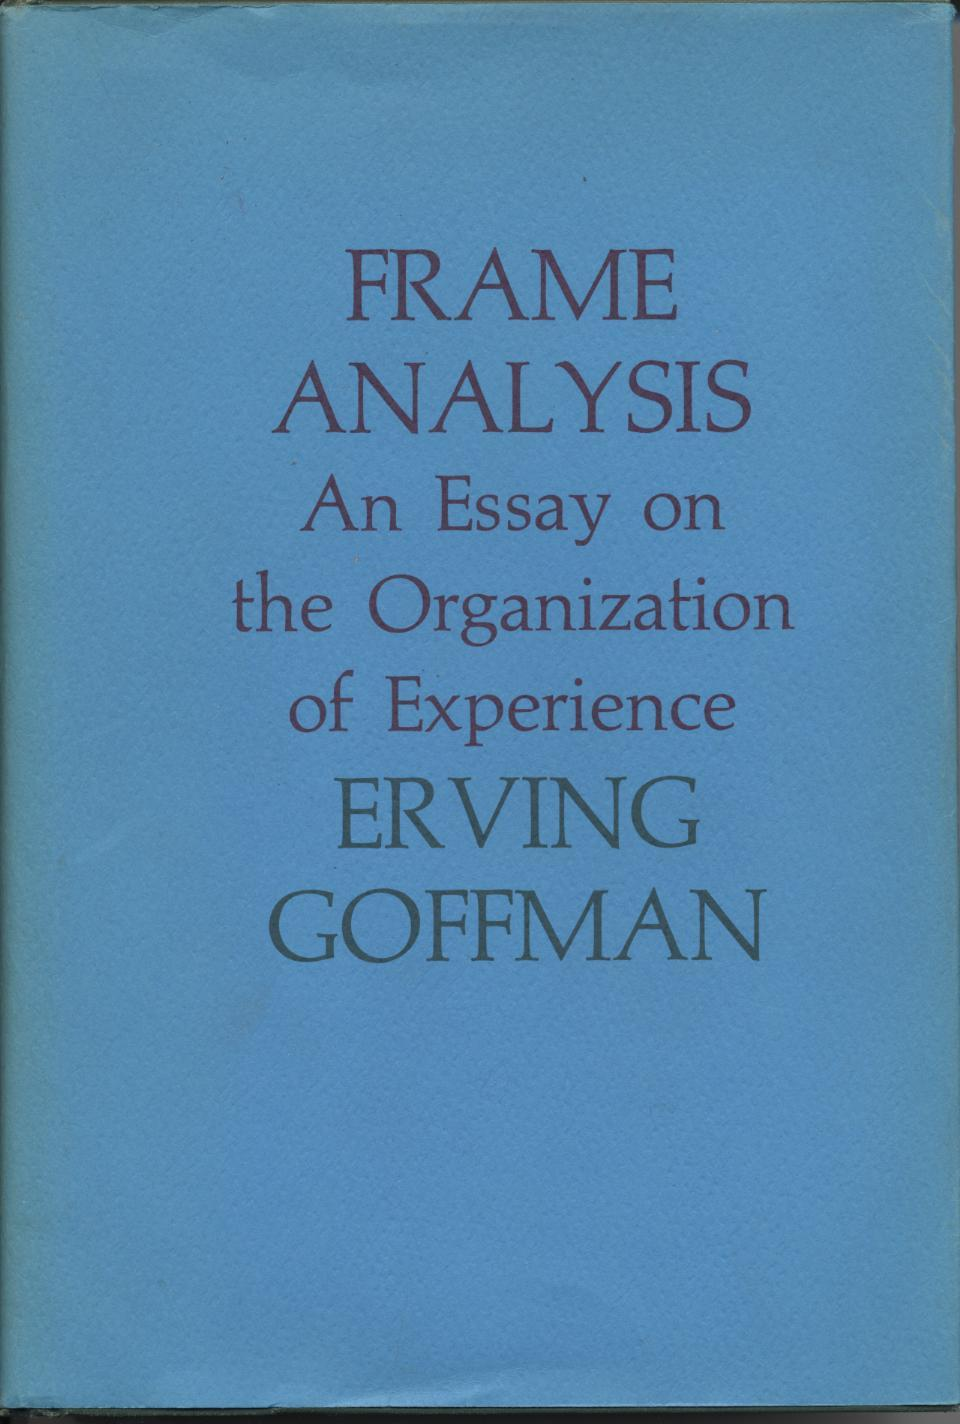 frame analysis an essay on the organization of experience scribd Editions for frame analysis: an essay on the organization of experience: 093035091x (paperback published in 1986), 8883582330 ( published in 2006), 84747.